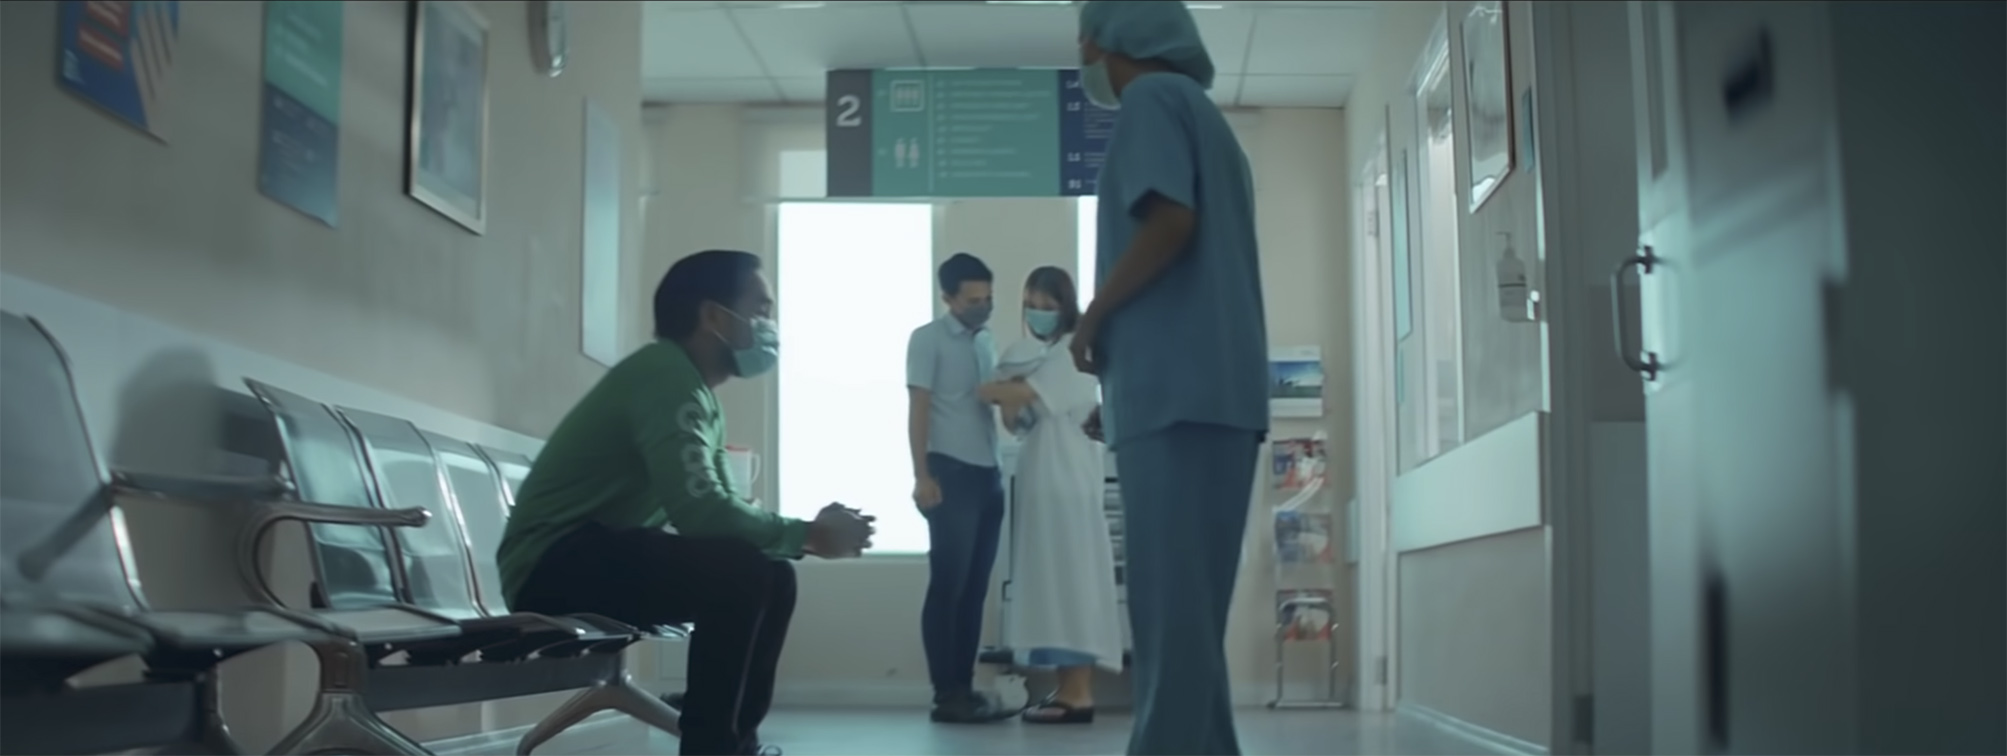 Grab's Father's Day film via VMLY&R COMMERCE generates over 7 million views in just one week